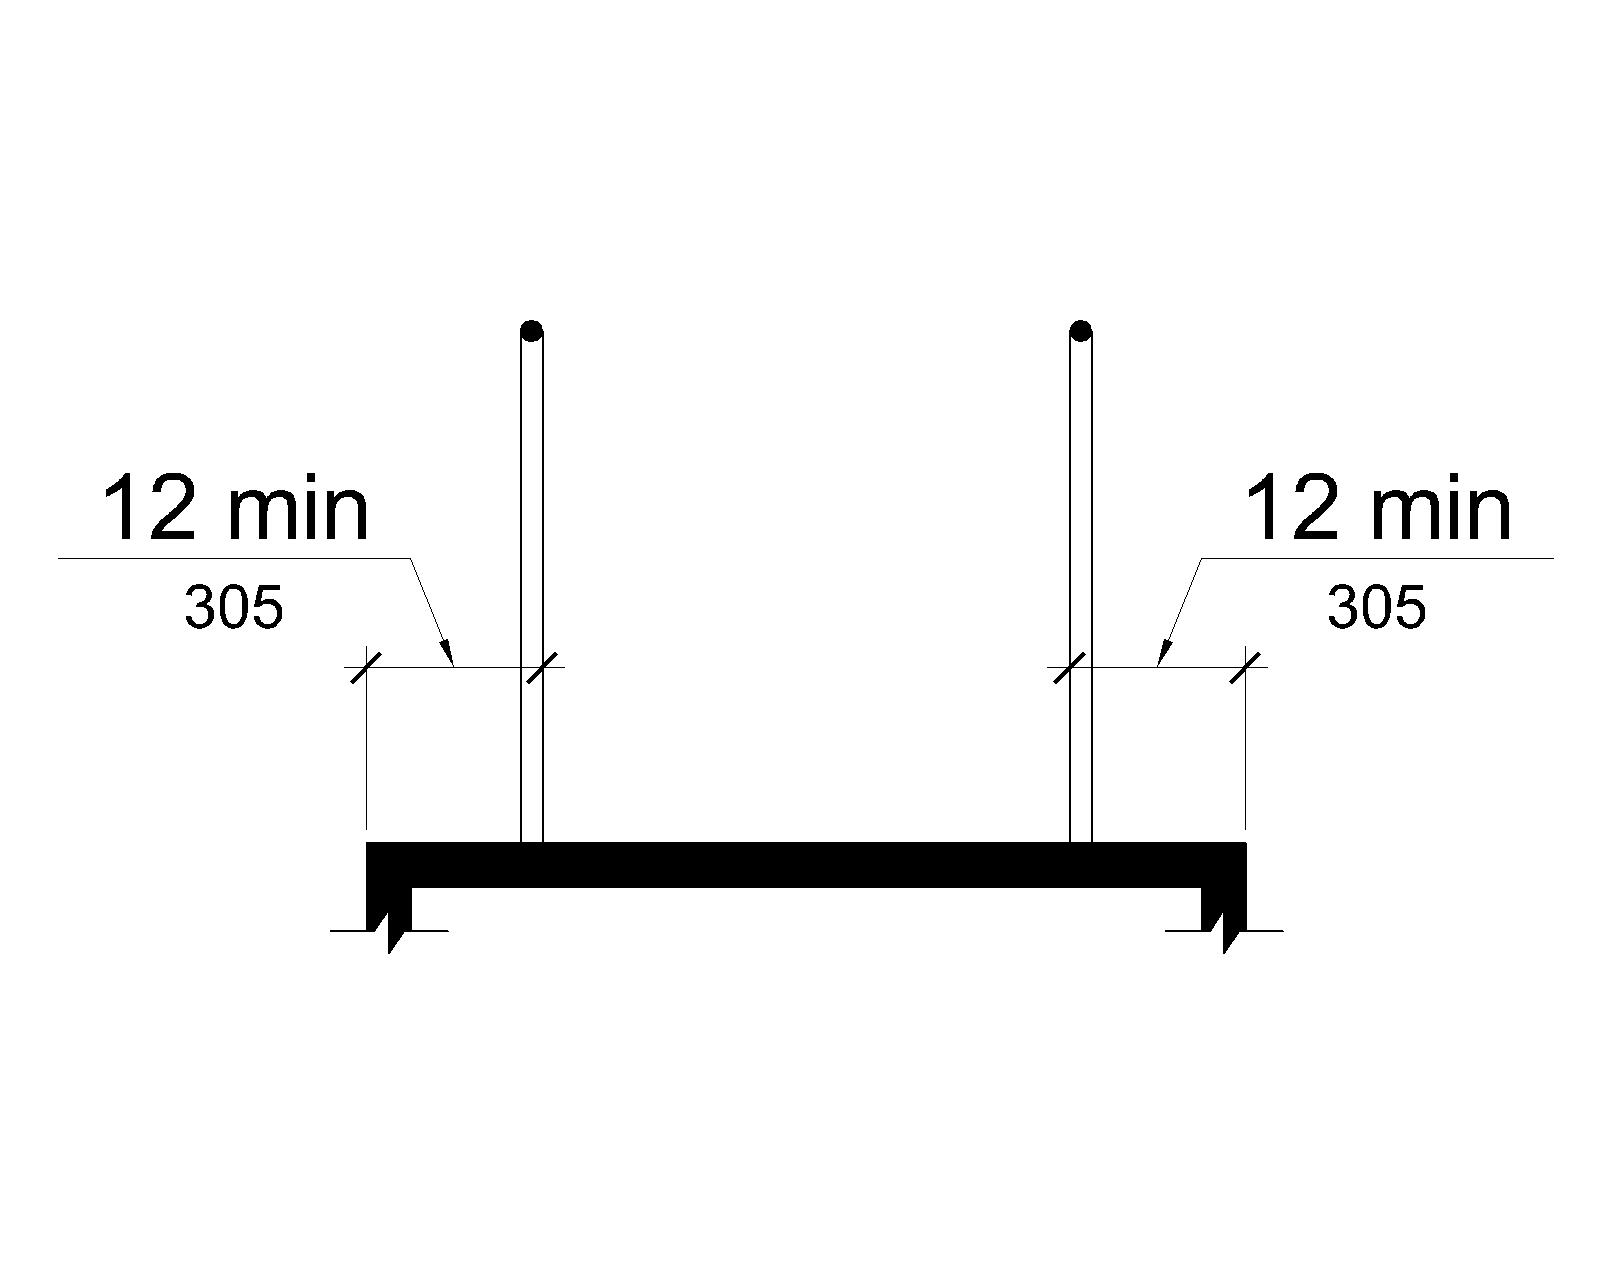 The cross section of a ramp with handrails is shown where the ramp surface extends 12 inches (305 mm) minimum to the outside of the handrails.